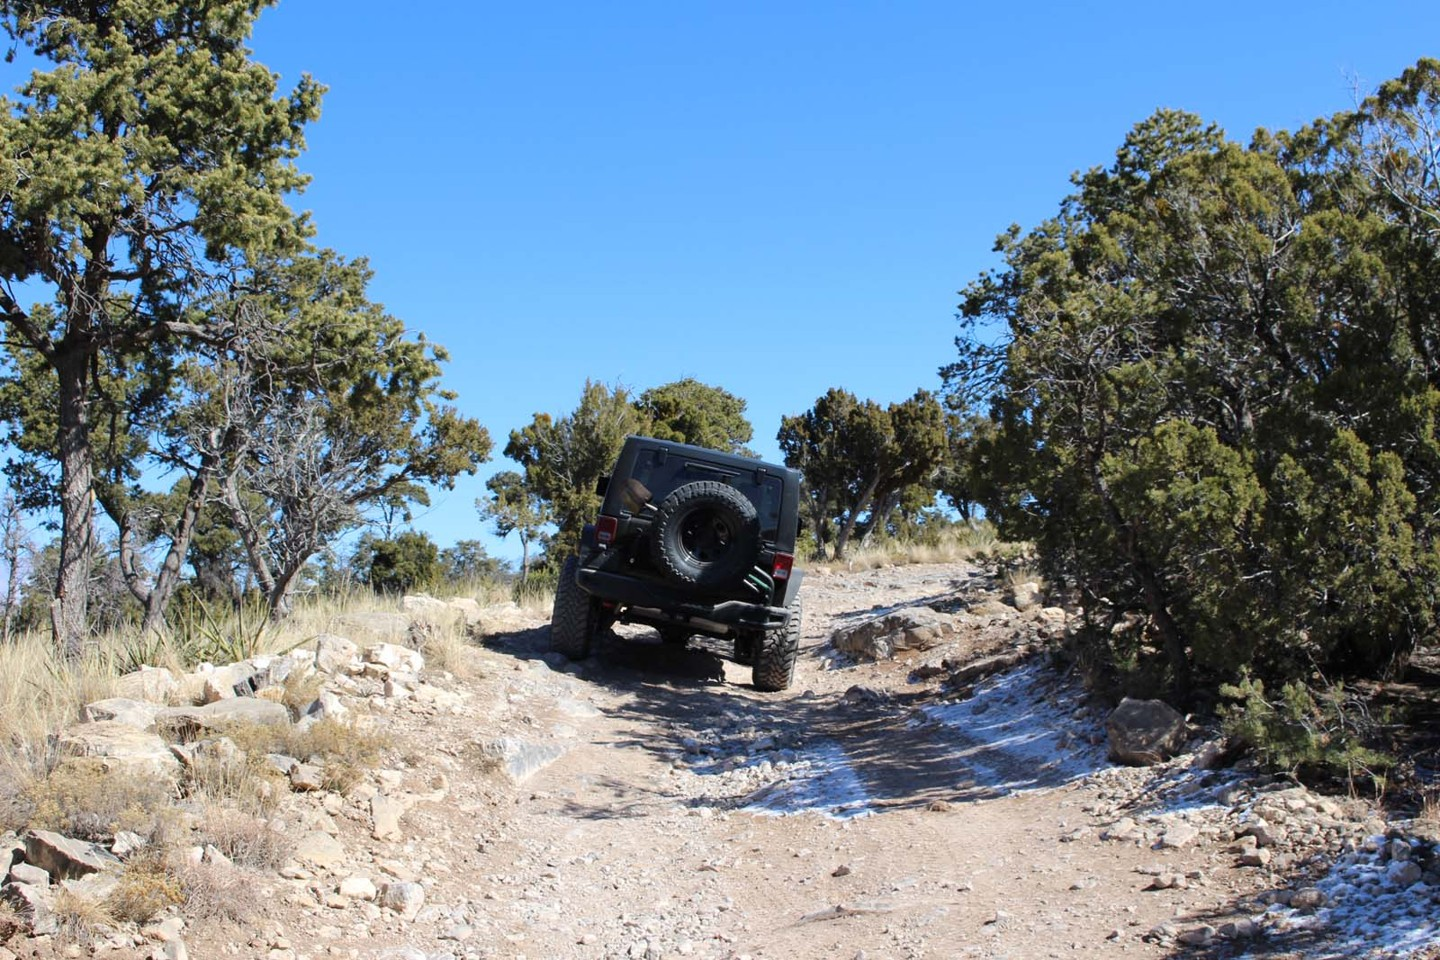 Trail Review: Chamisoso Canyon